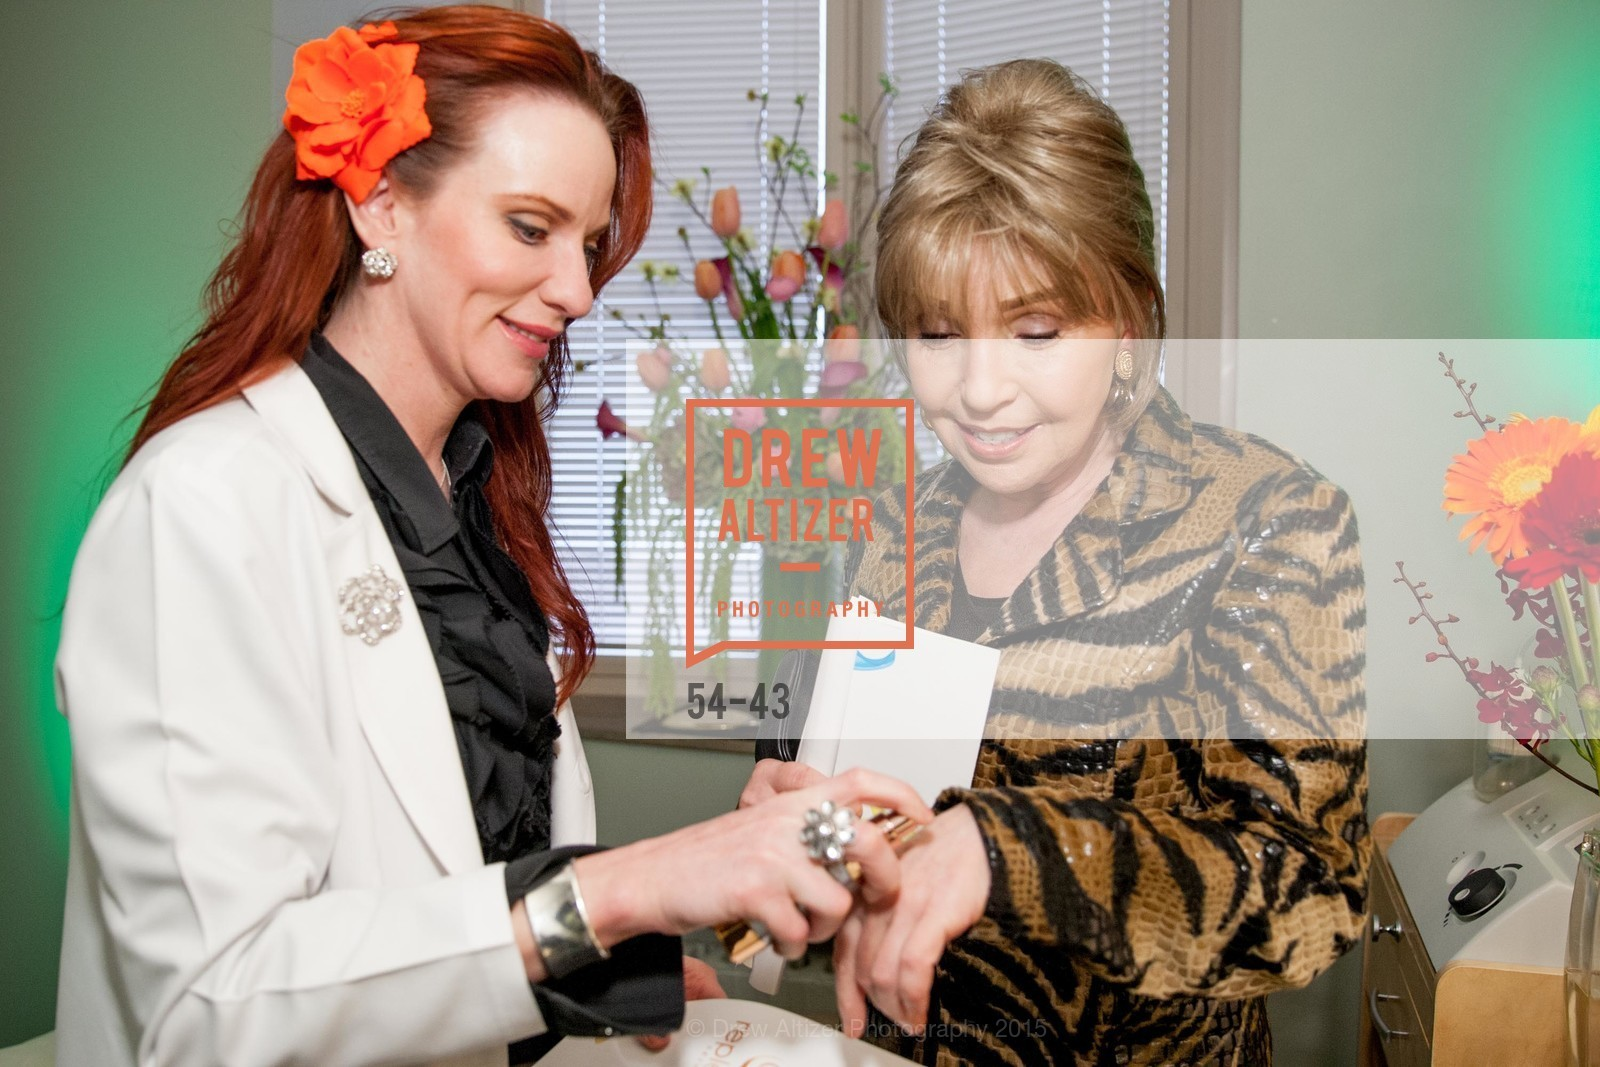 Kelly Forante, Terry Forestieri, EPI CENTER MedSpa Anniversary and Launch of REPLETE, Epi Center MedSpa, April 21st, 2015,Drew Altizer, Drew Altizer Photography, full-service agency, private events, San Francisco photographer, photographer california